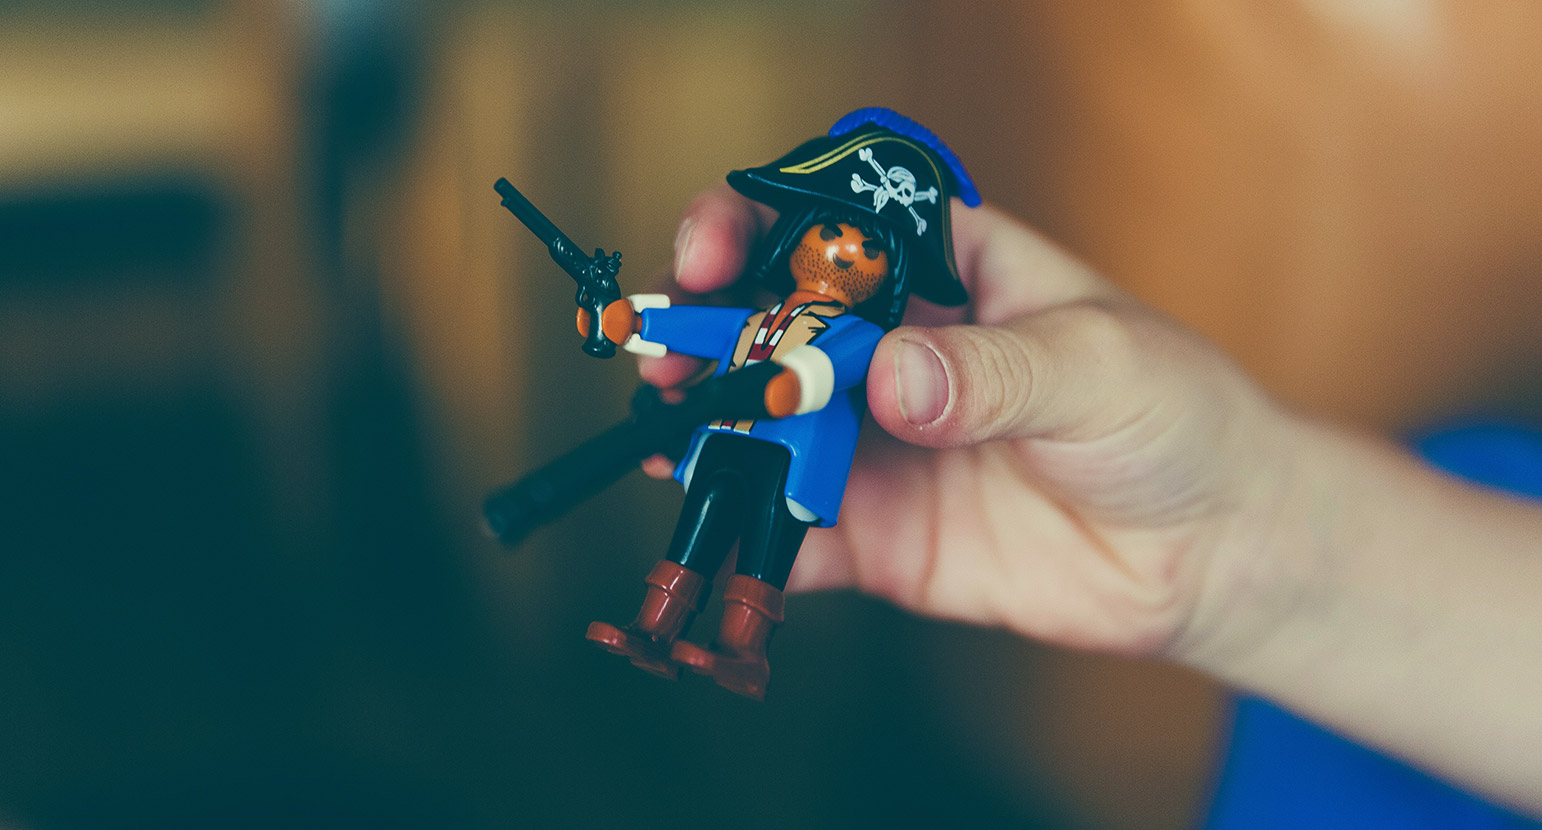 Man holds pirate Lego character